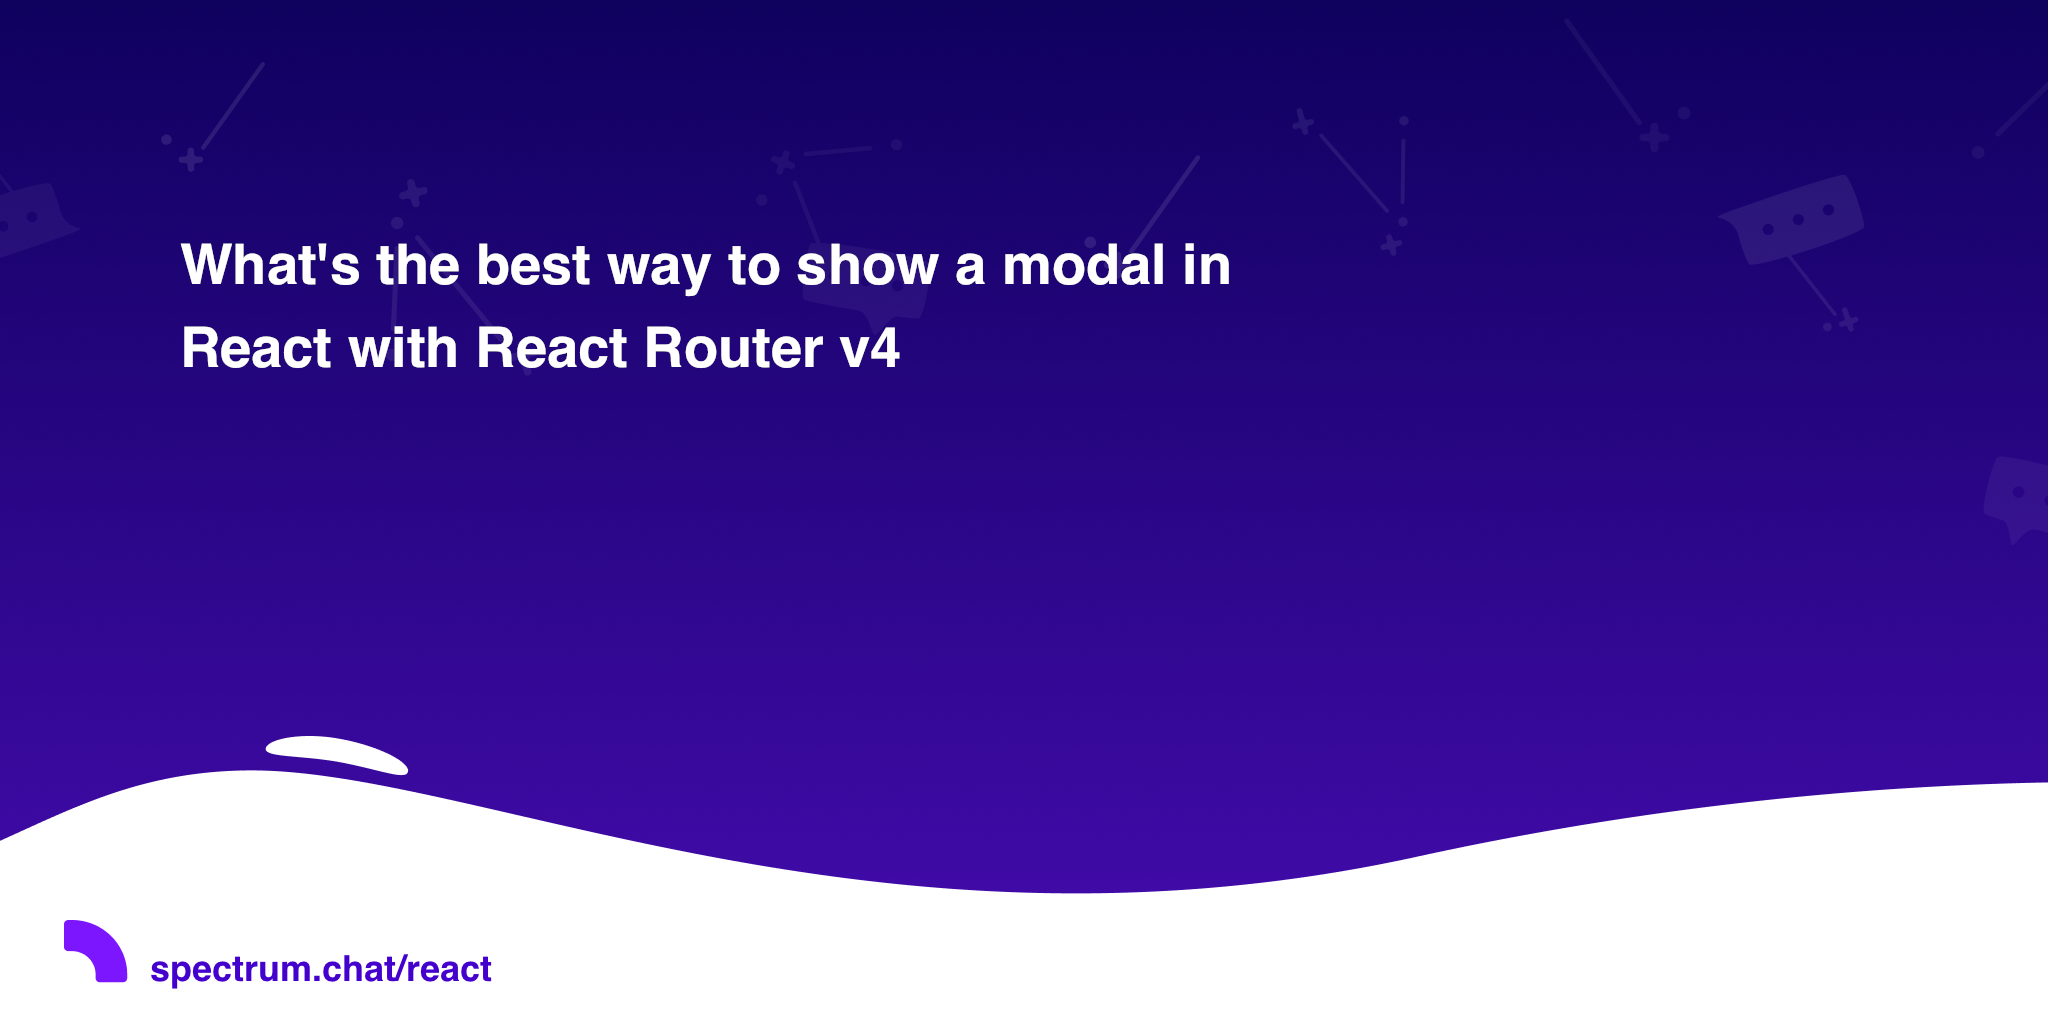 What's the best way to show a modal in React with React